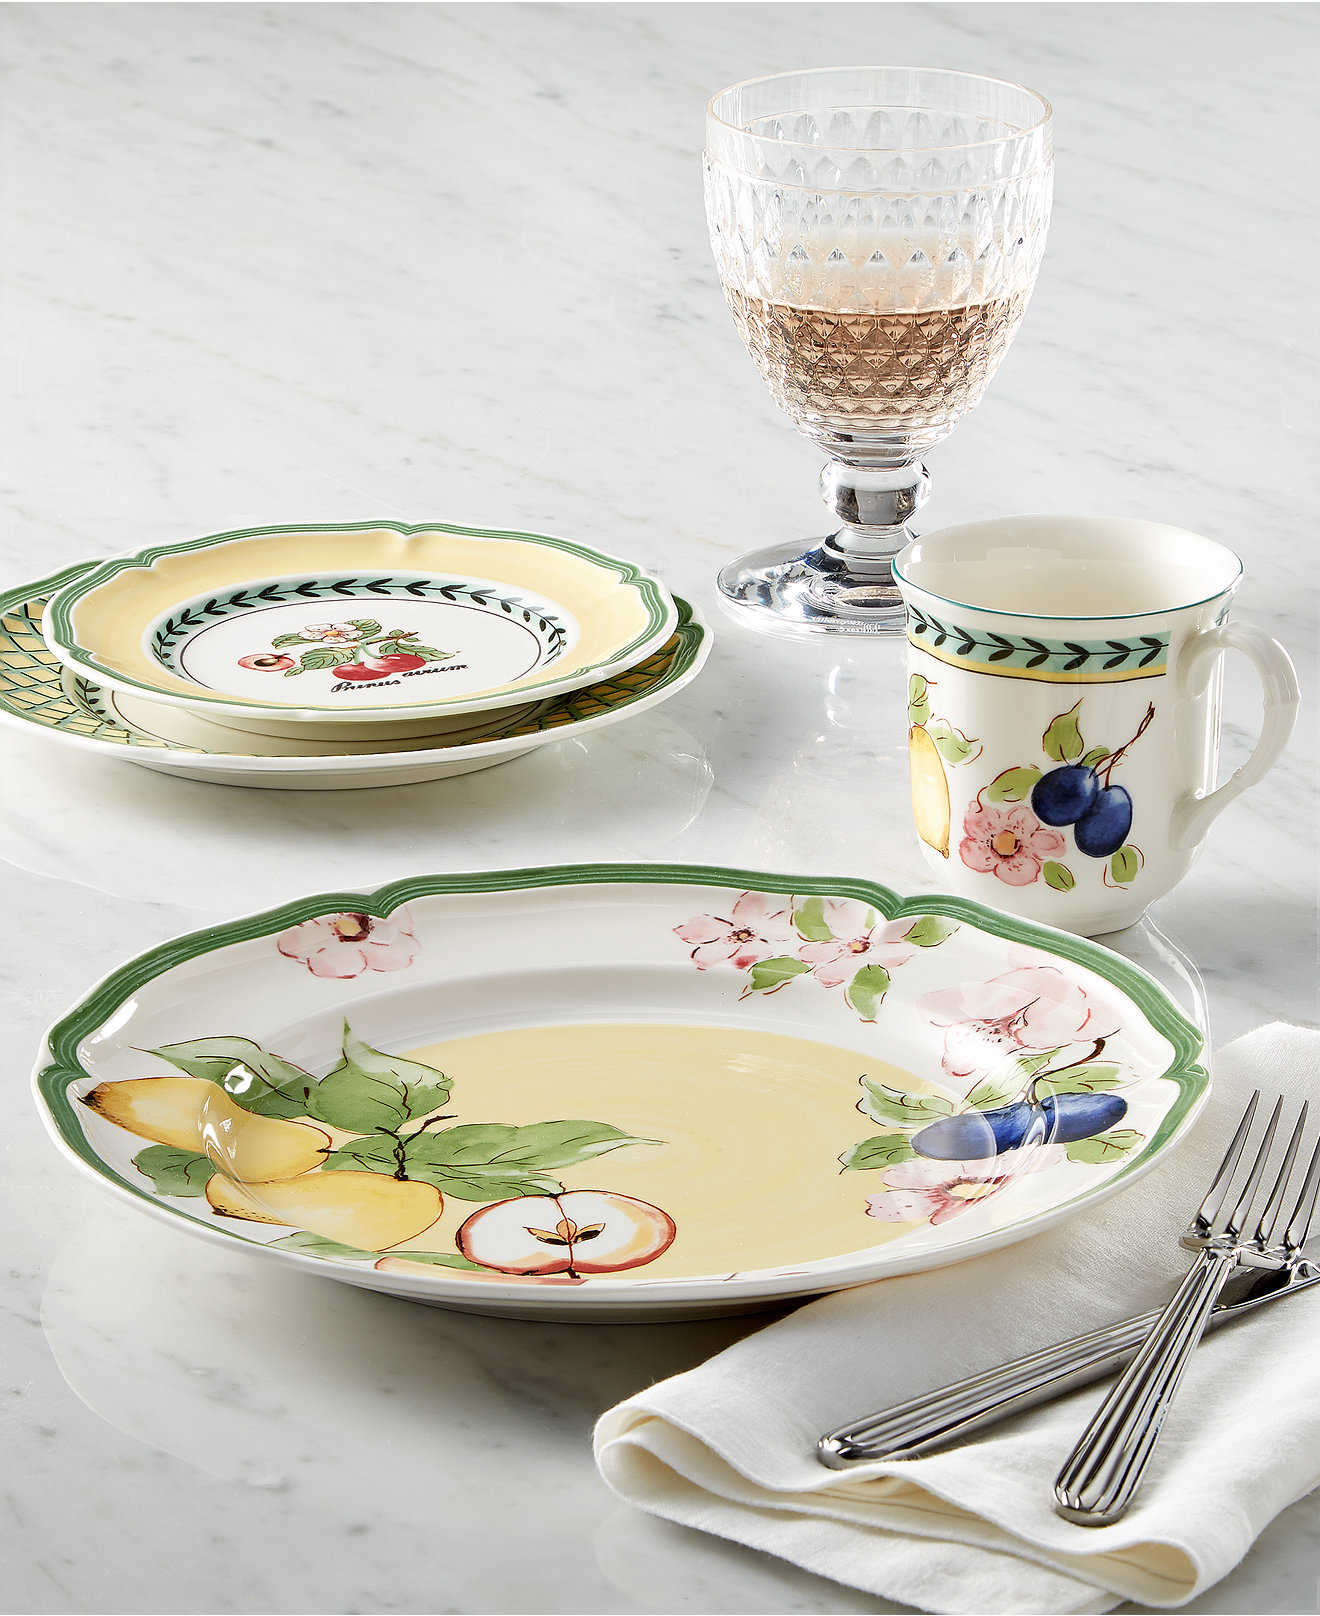 Villeroy and boch french garden garden ftempo for Villeroy boch french garden